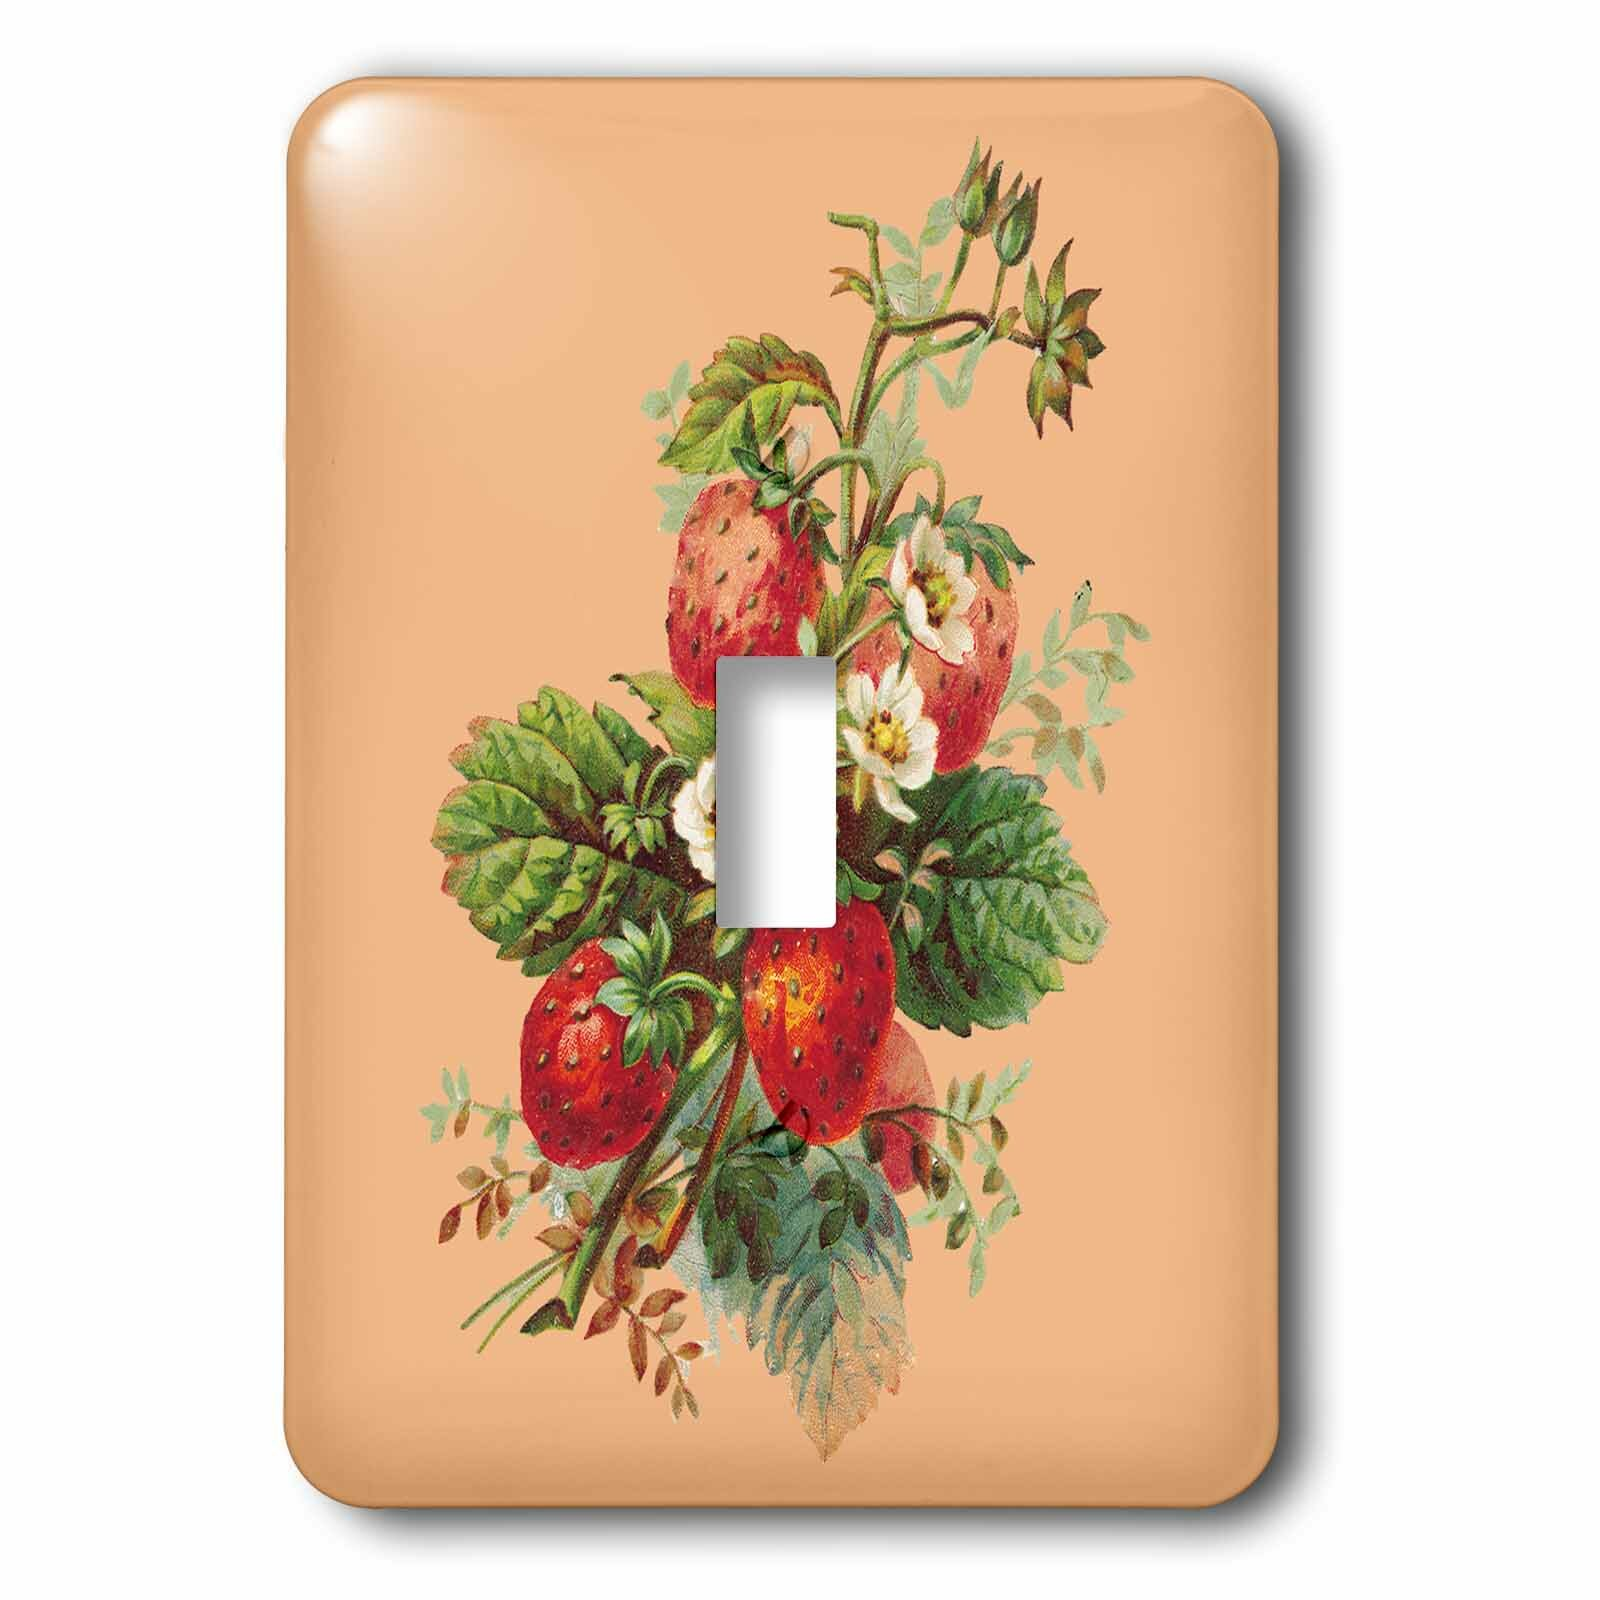 3drose Strawberry Plant With Fruits And Flowers 1 Gang Toggle Light Switch Wall Plate Wayfair